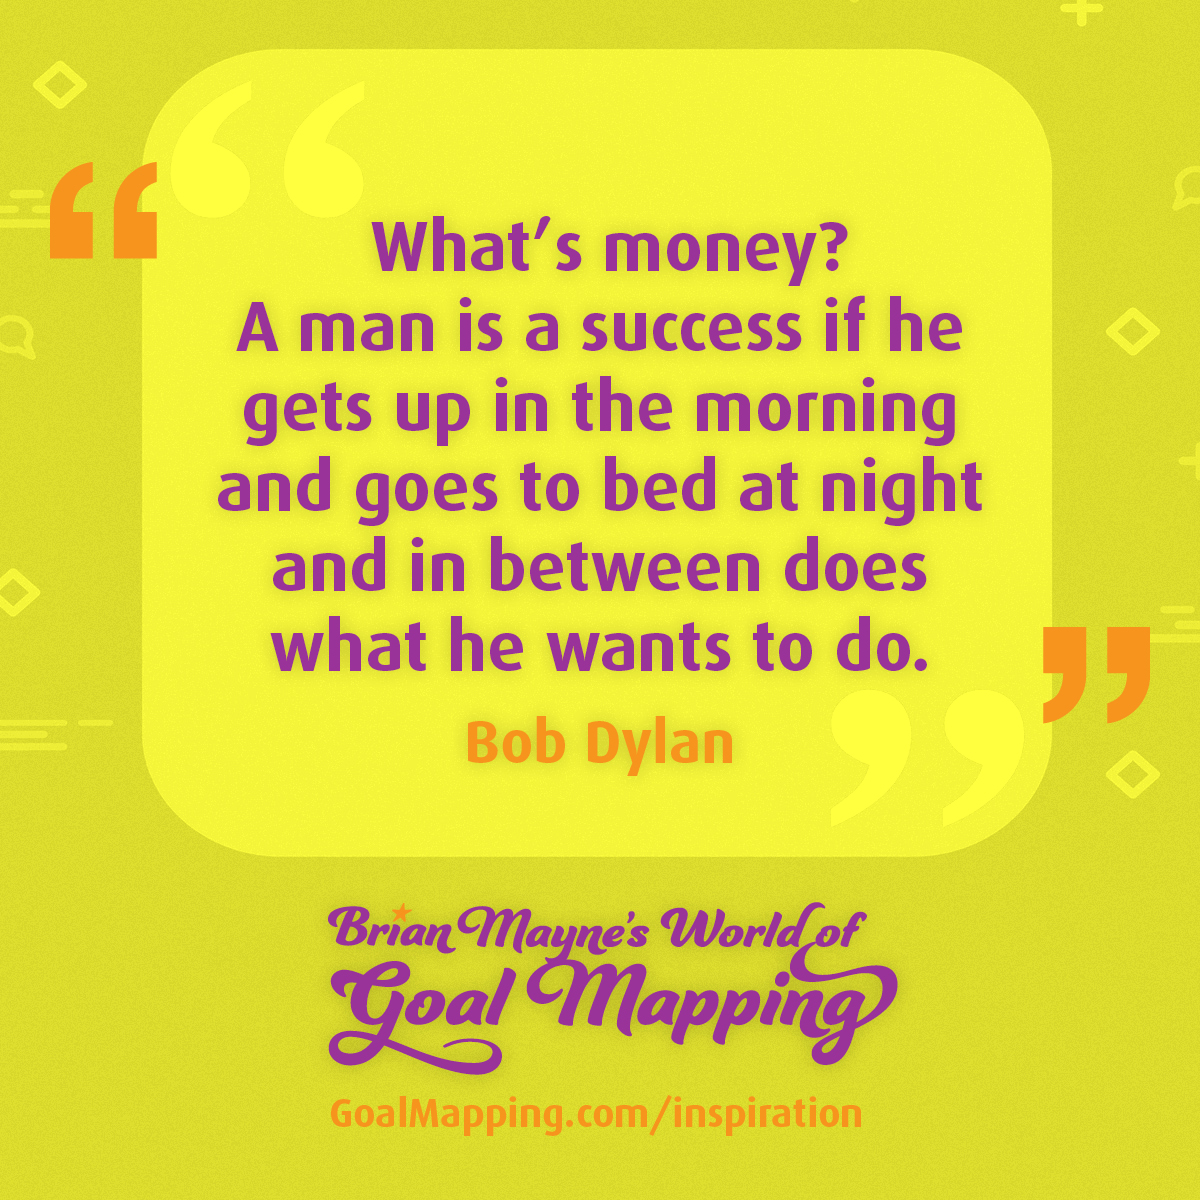 """""""What's money? A man is a success if he gets up in the morning and goes to bed at night and in between does what he wants to do."""" Bob Dylan"""